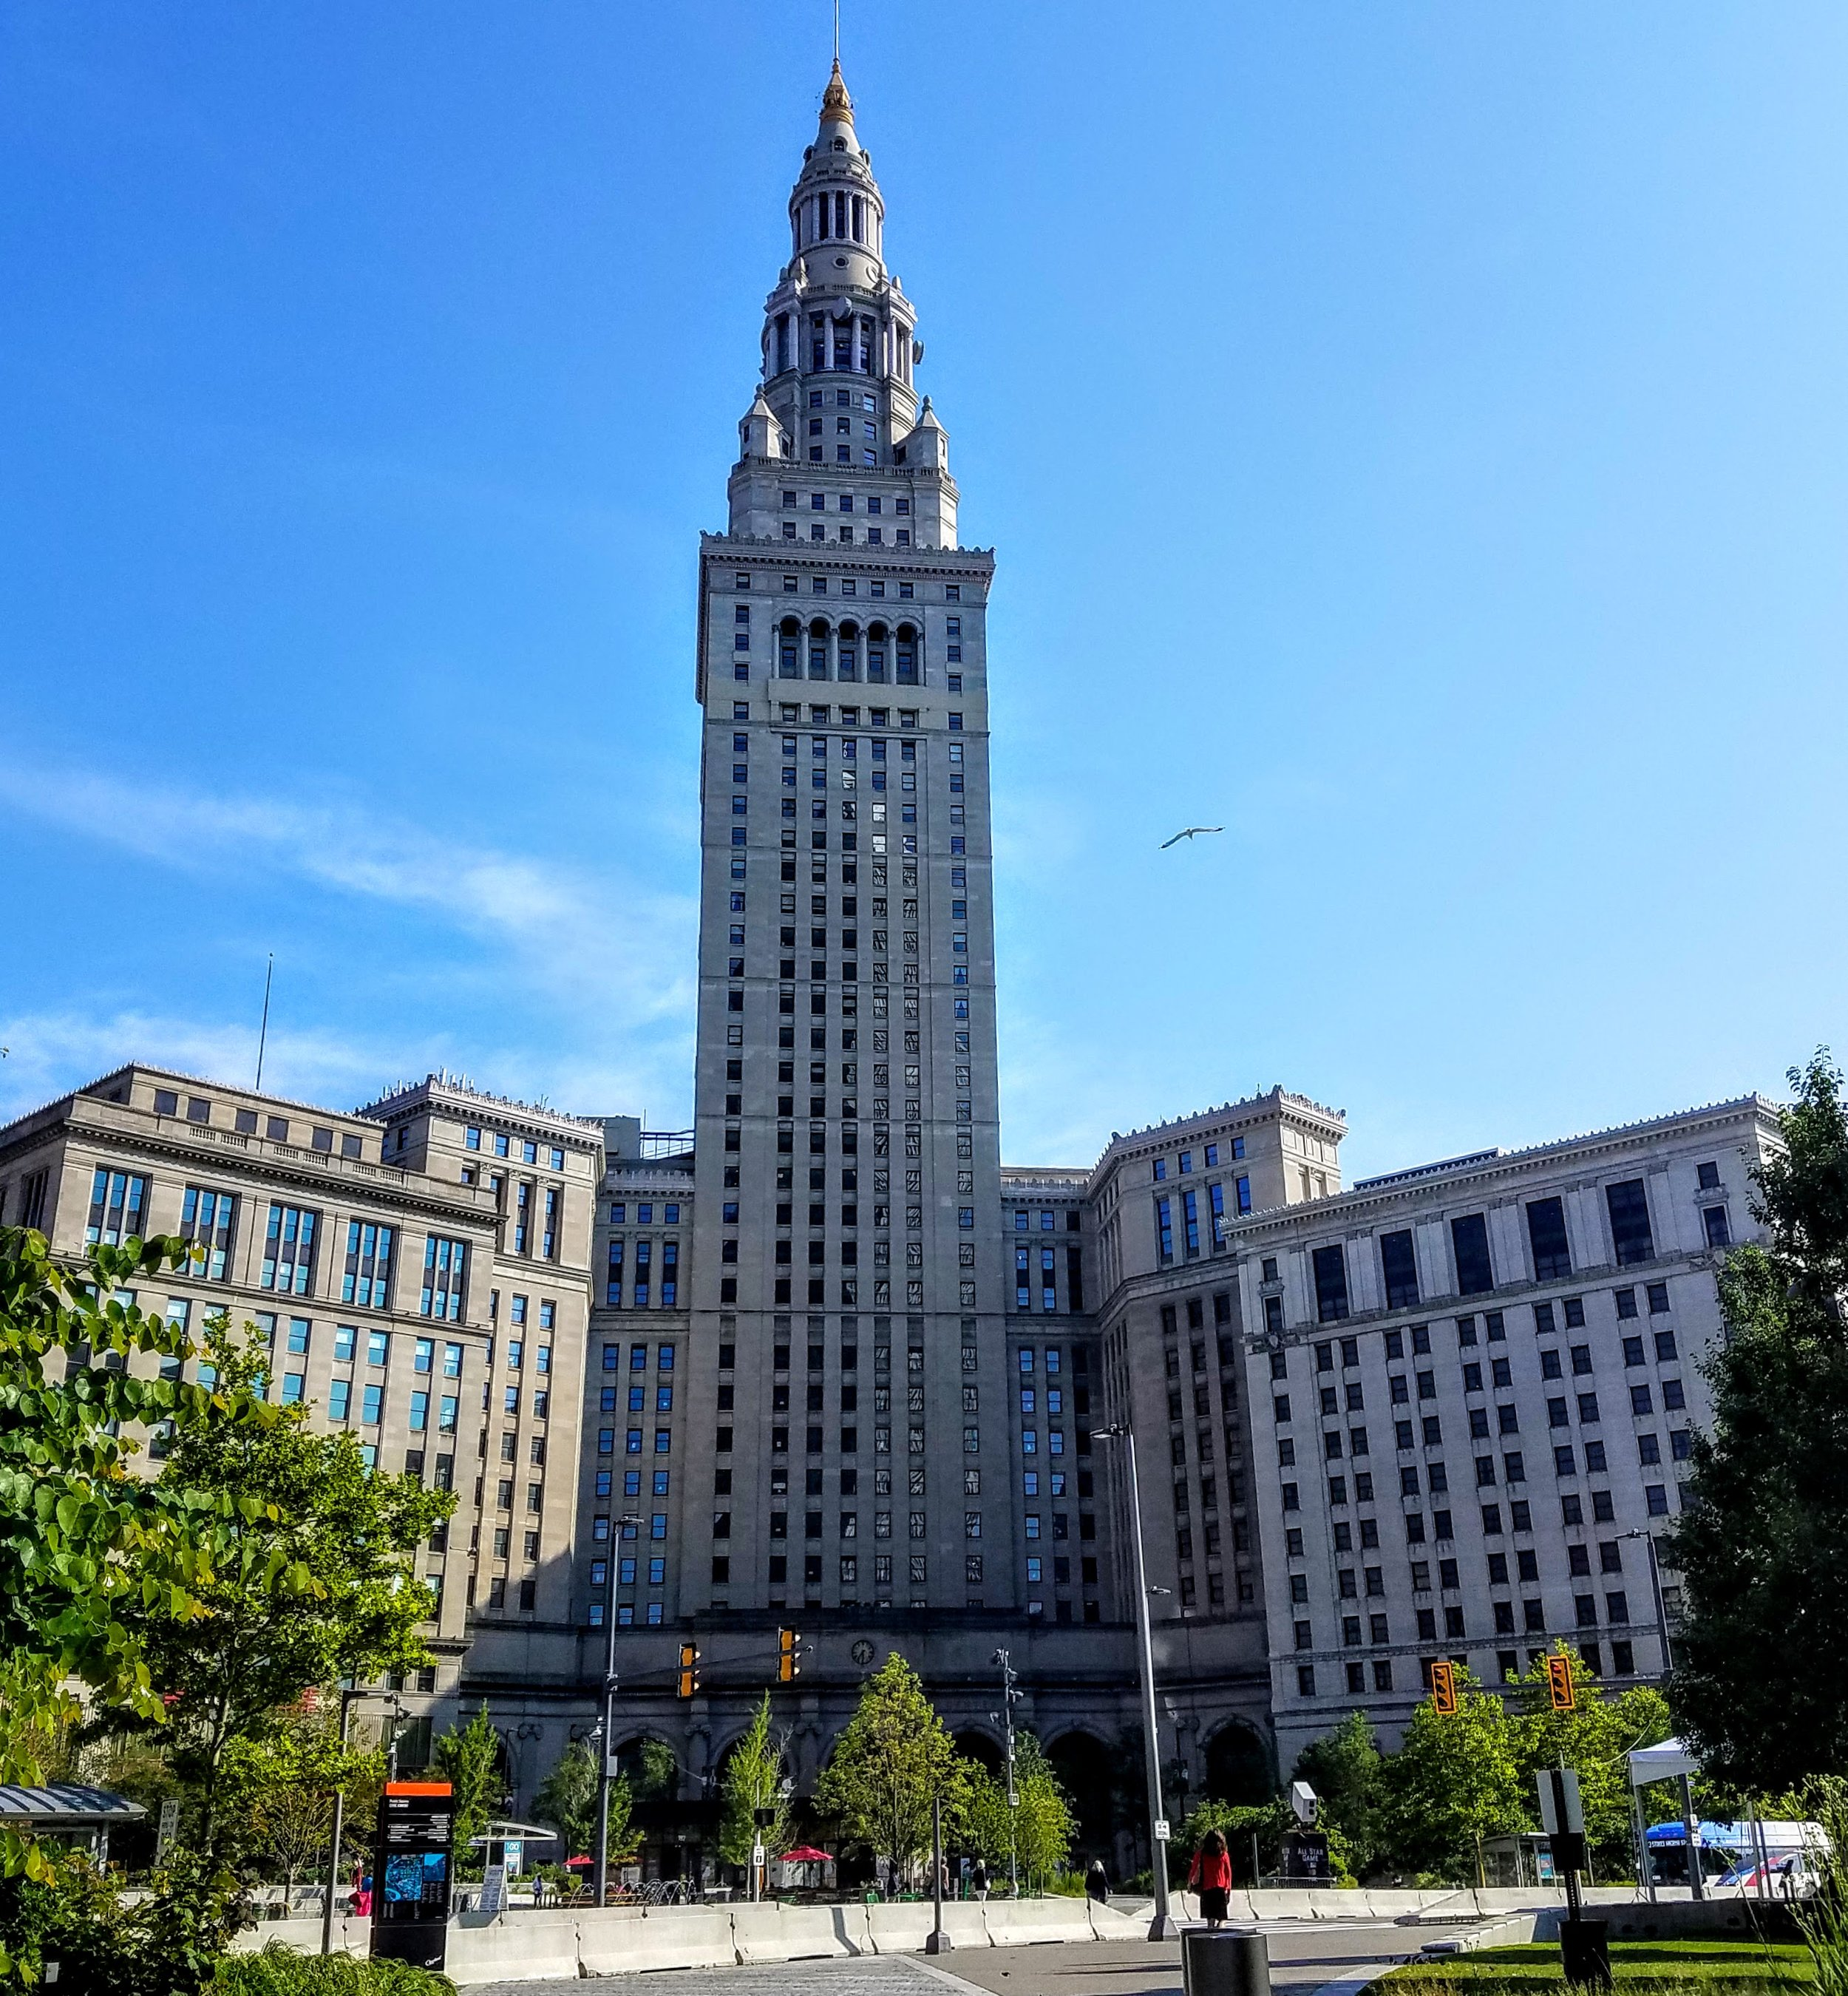 Terminal Tower is a 52-stories and built in 1930.